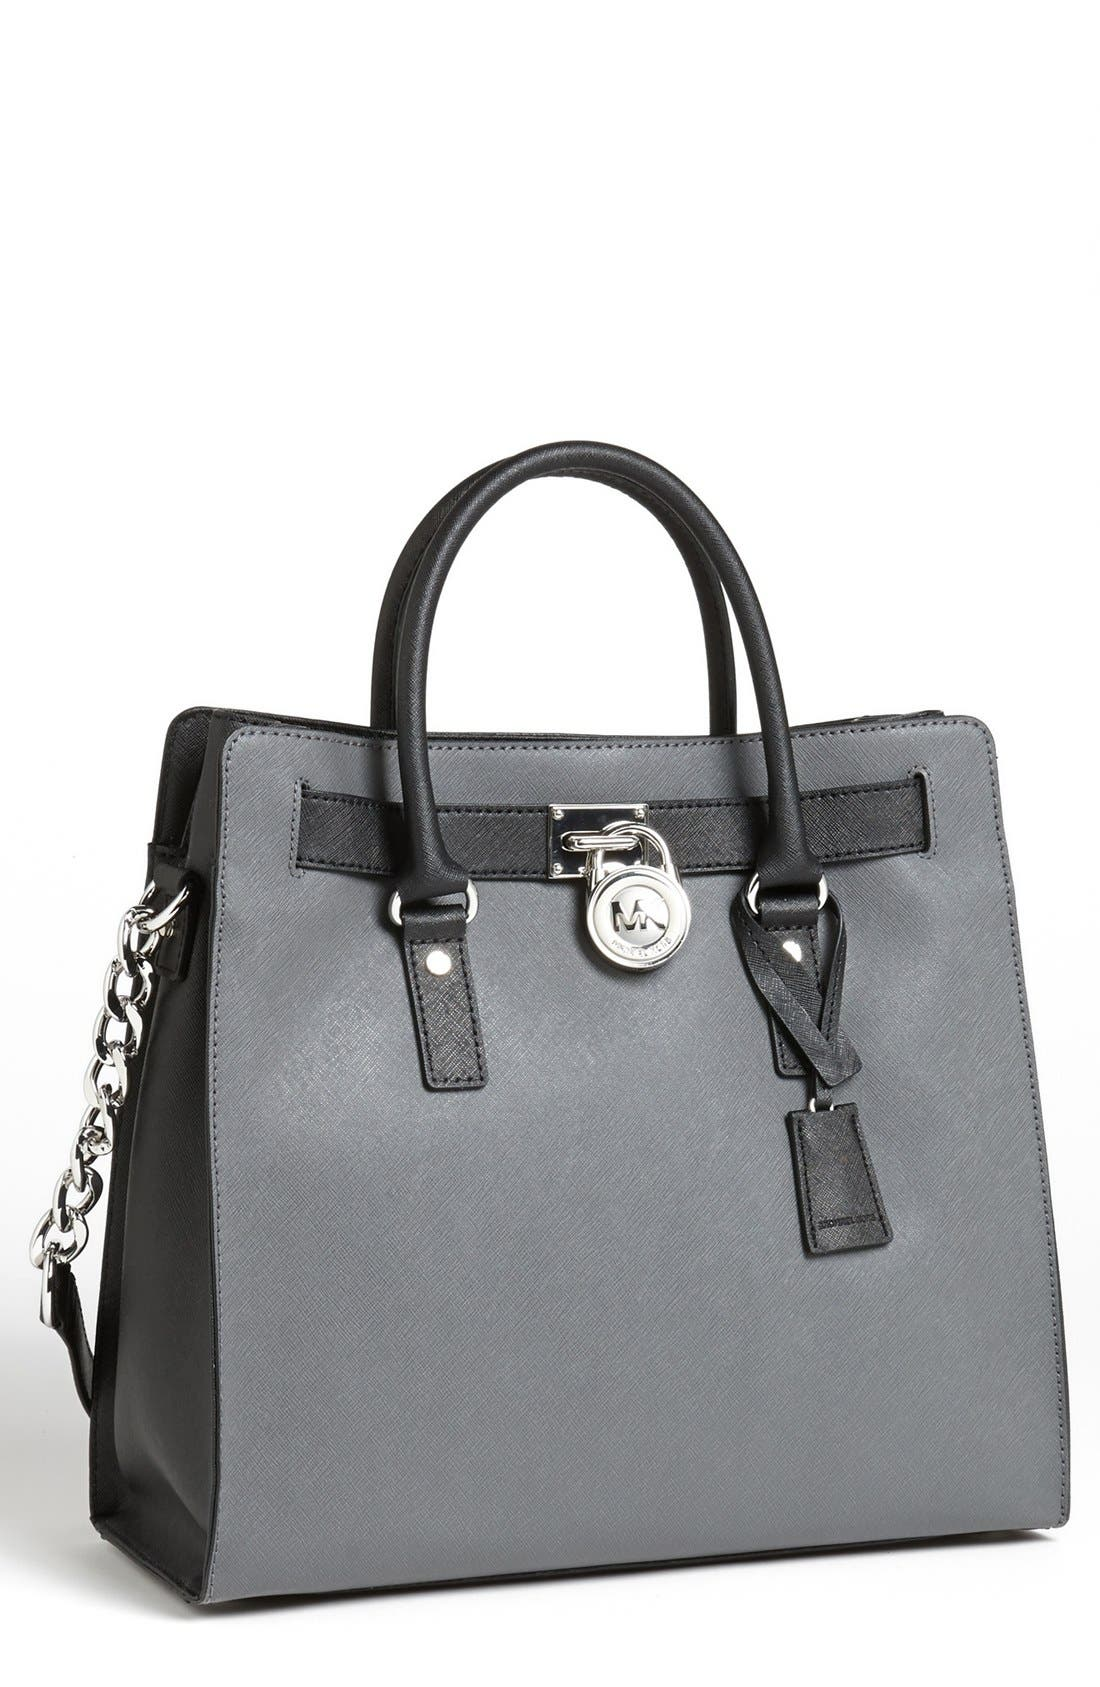 'Hamilton - Large' Saffiano Leather Tote, Main, color, 031